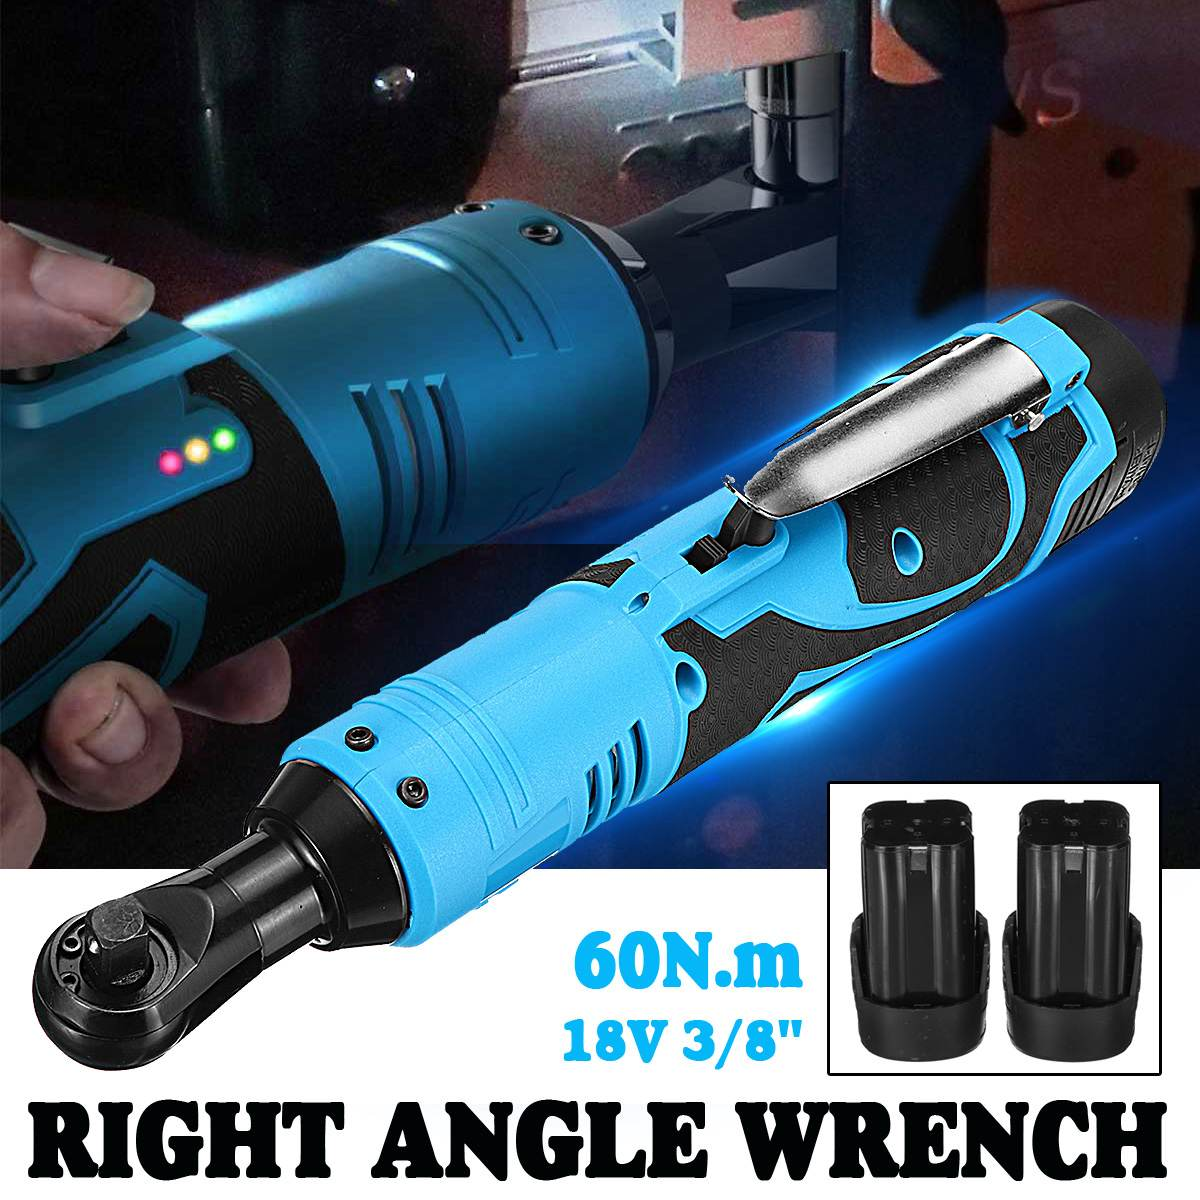 18V 60N.m 3/8 Inch Cordless Electric Ratchet Right Angle Wrench With 2pcs 8000mAh Battery Charger LED Power Tools